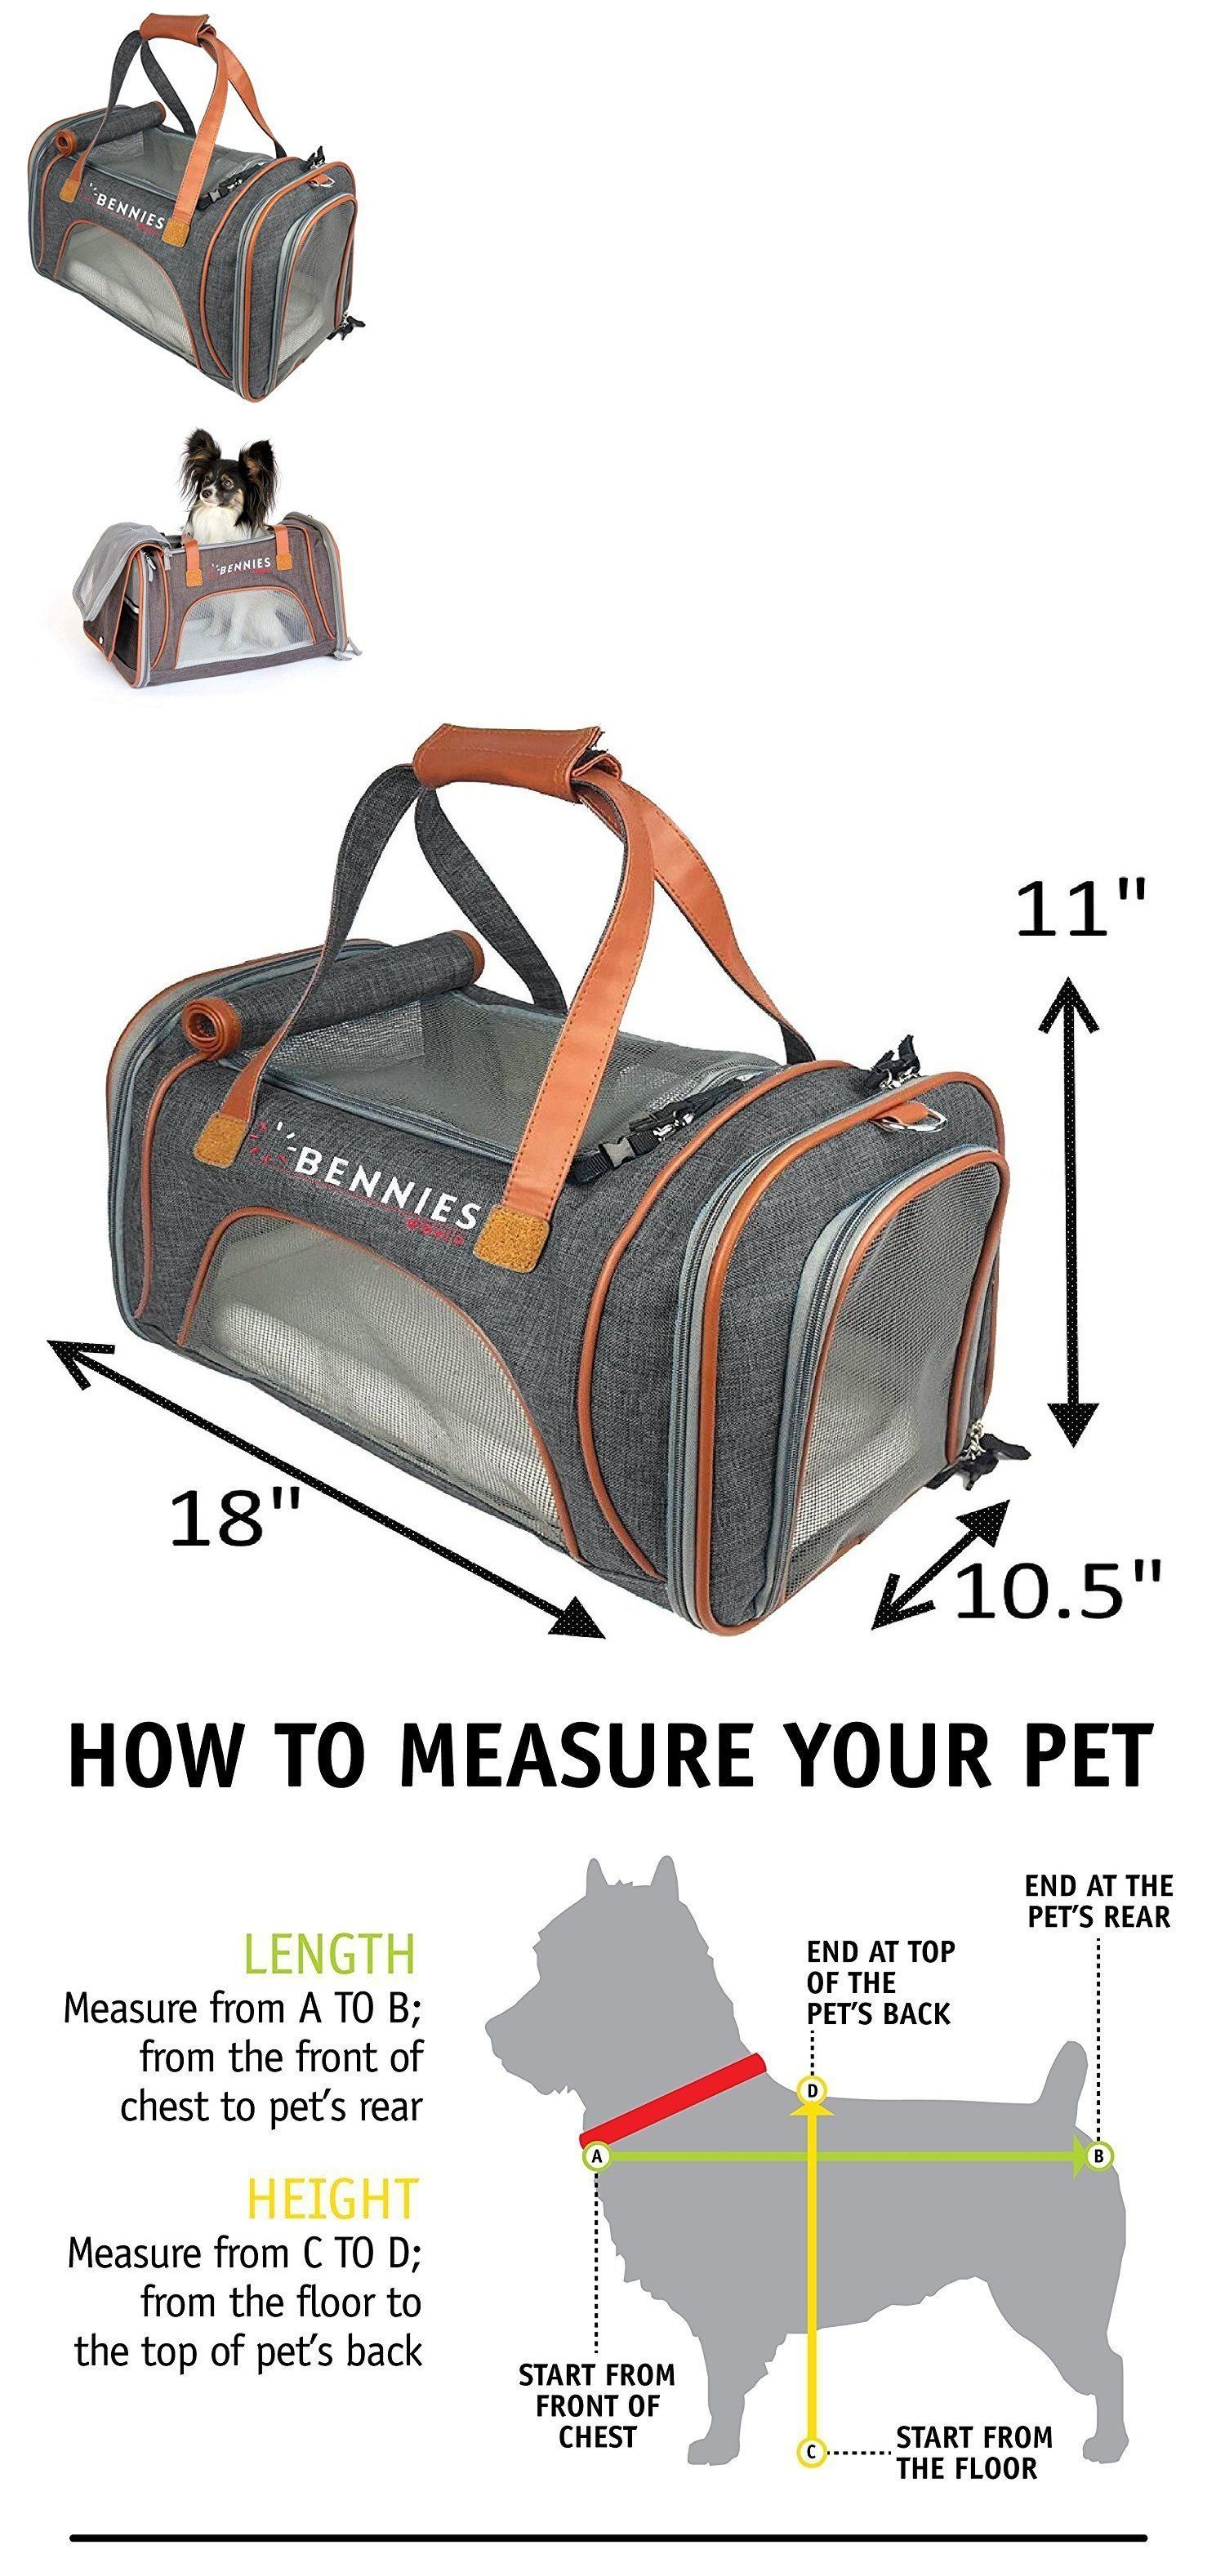 b21962d8917 Carriers and Crates 26702: Pet Travel Bag Carrier For Dogs And Cats -  Airline Approved, Fits Under The Seat -> BUY IT NOW ONLY: $58.99 on #eBay # carriers ...